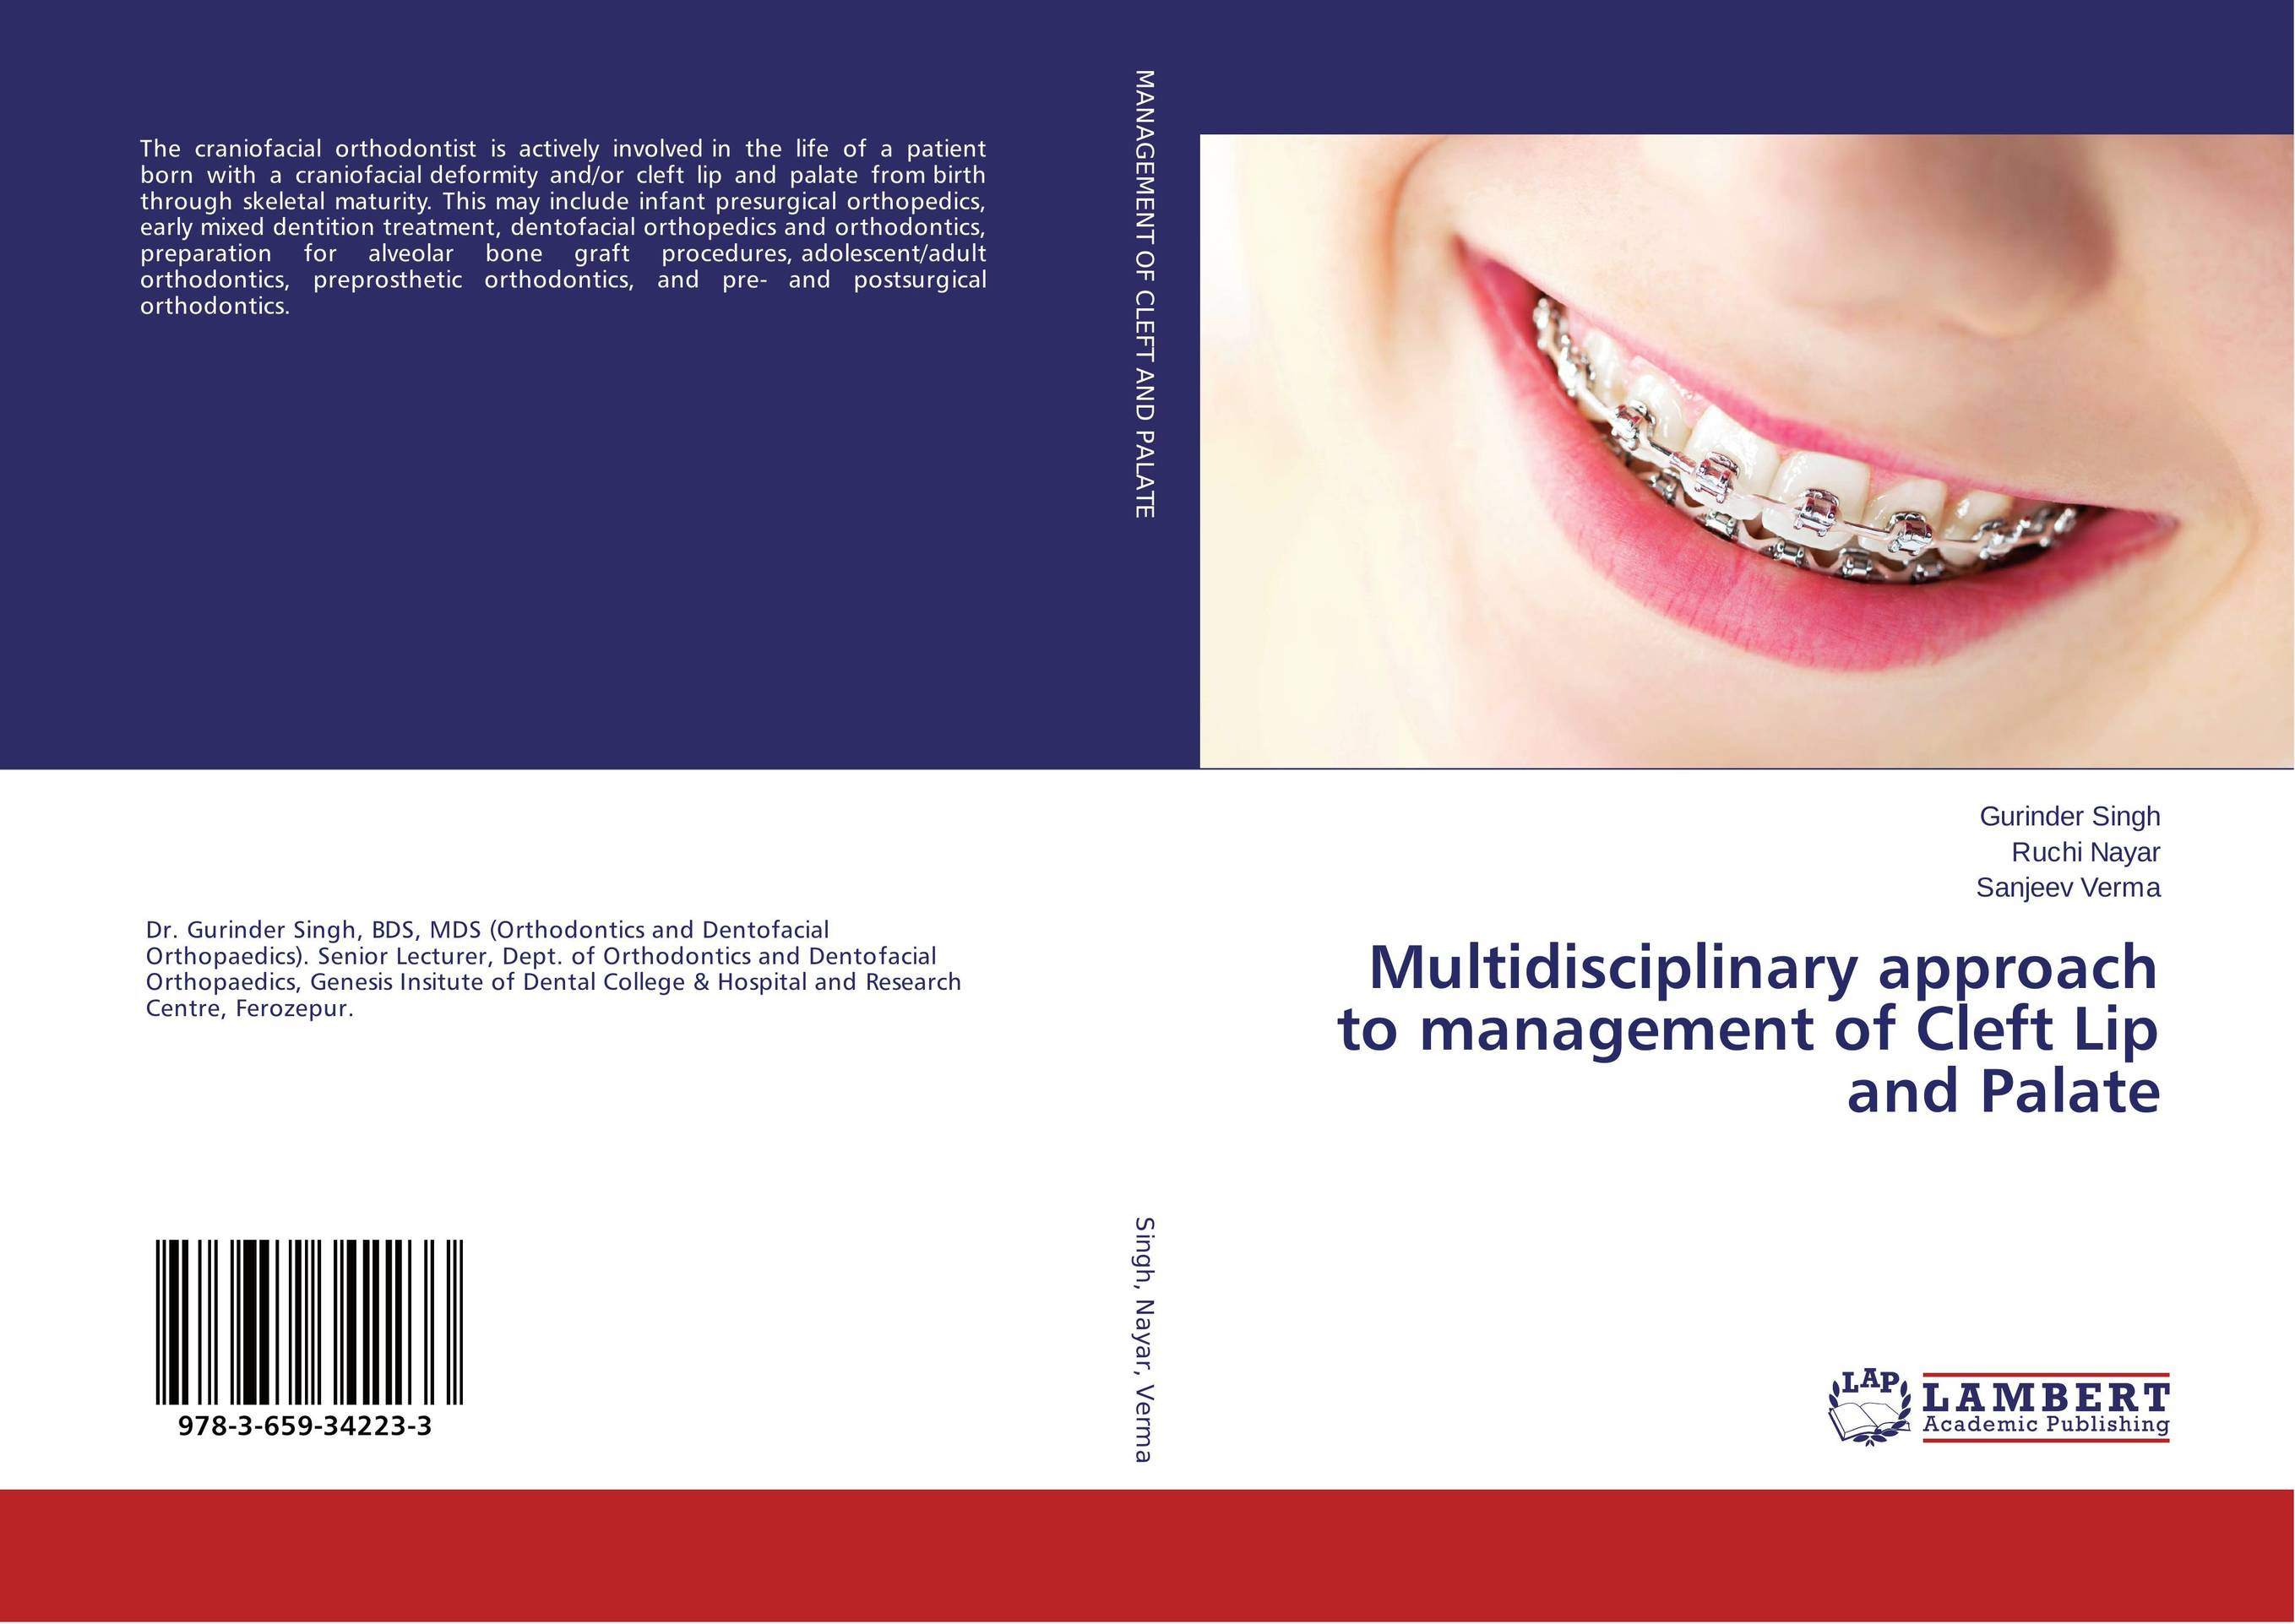 Multidisciplinary approach to management of Cleft Lip and Palate rakesh kumar tiwari and rajendra prasad ojha conformation and stability of mixed dna triplex